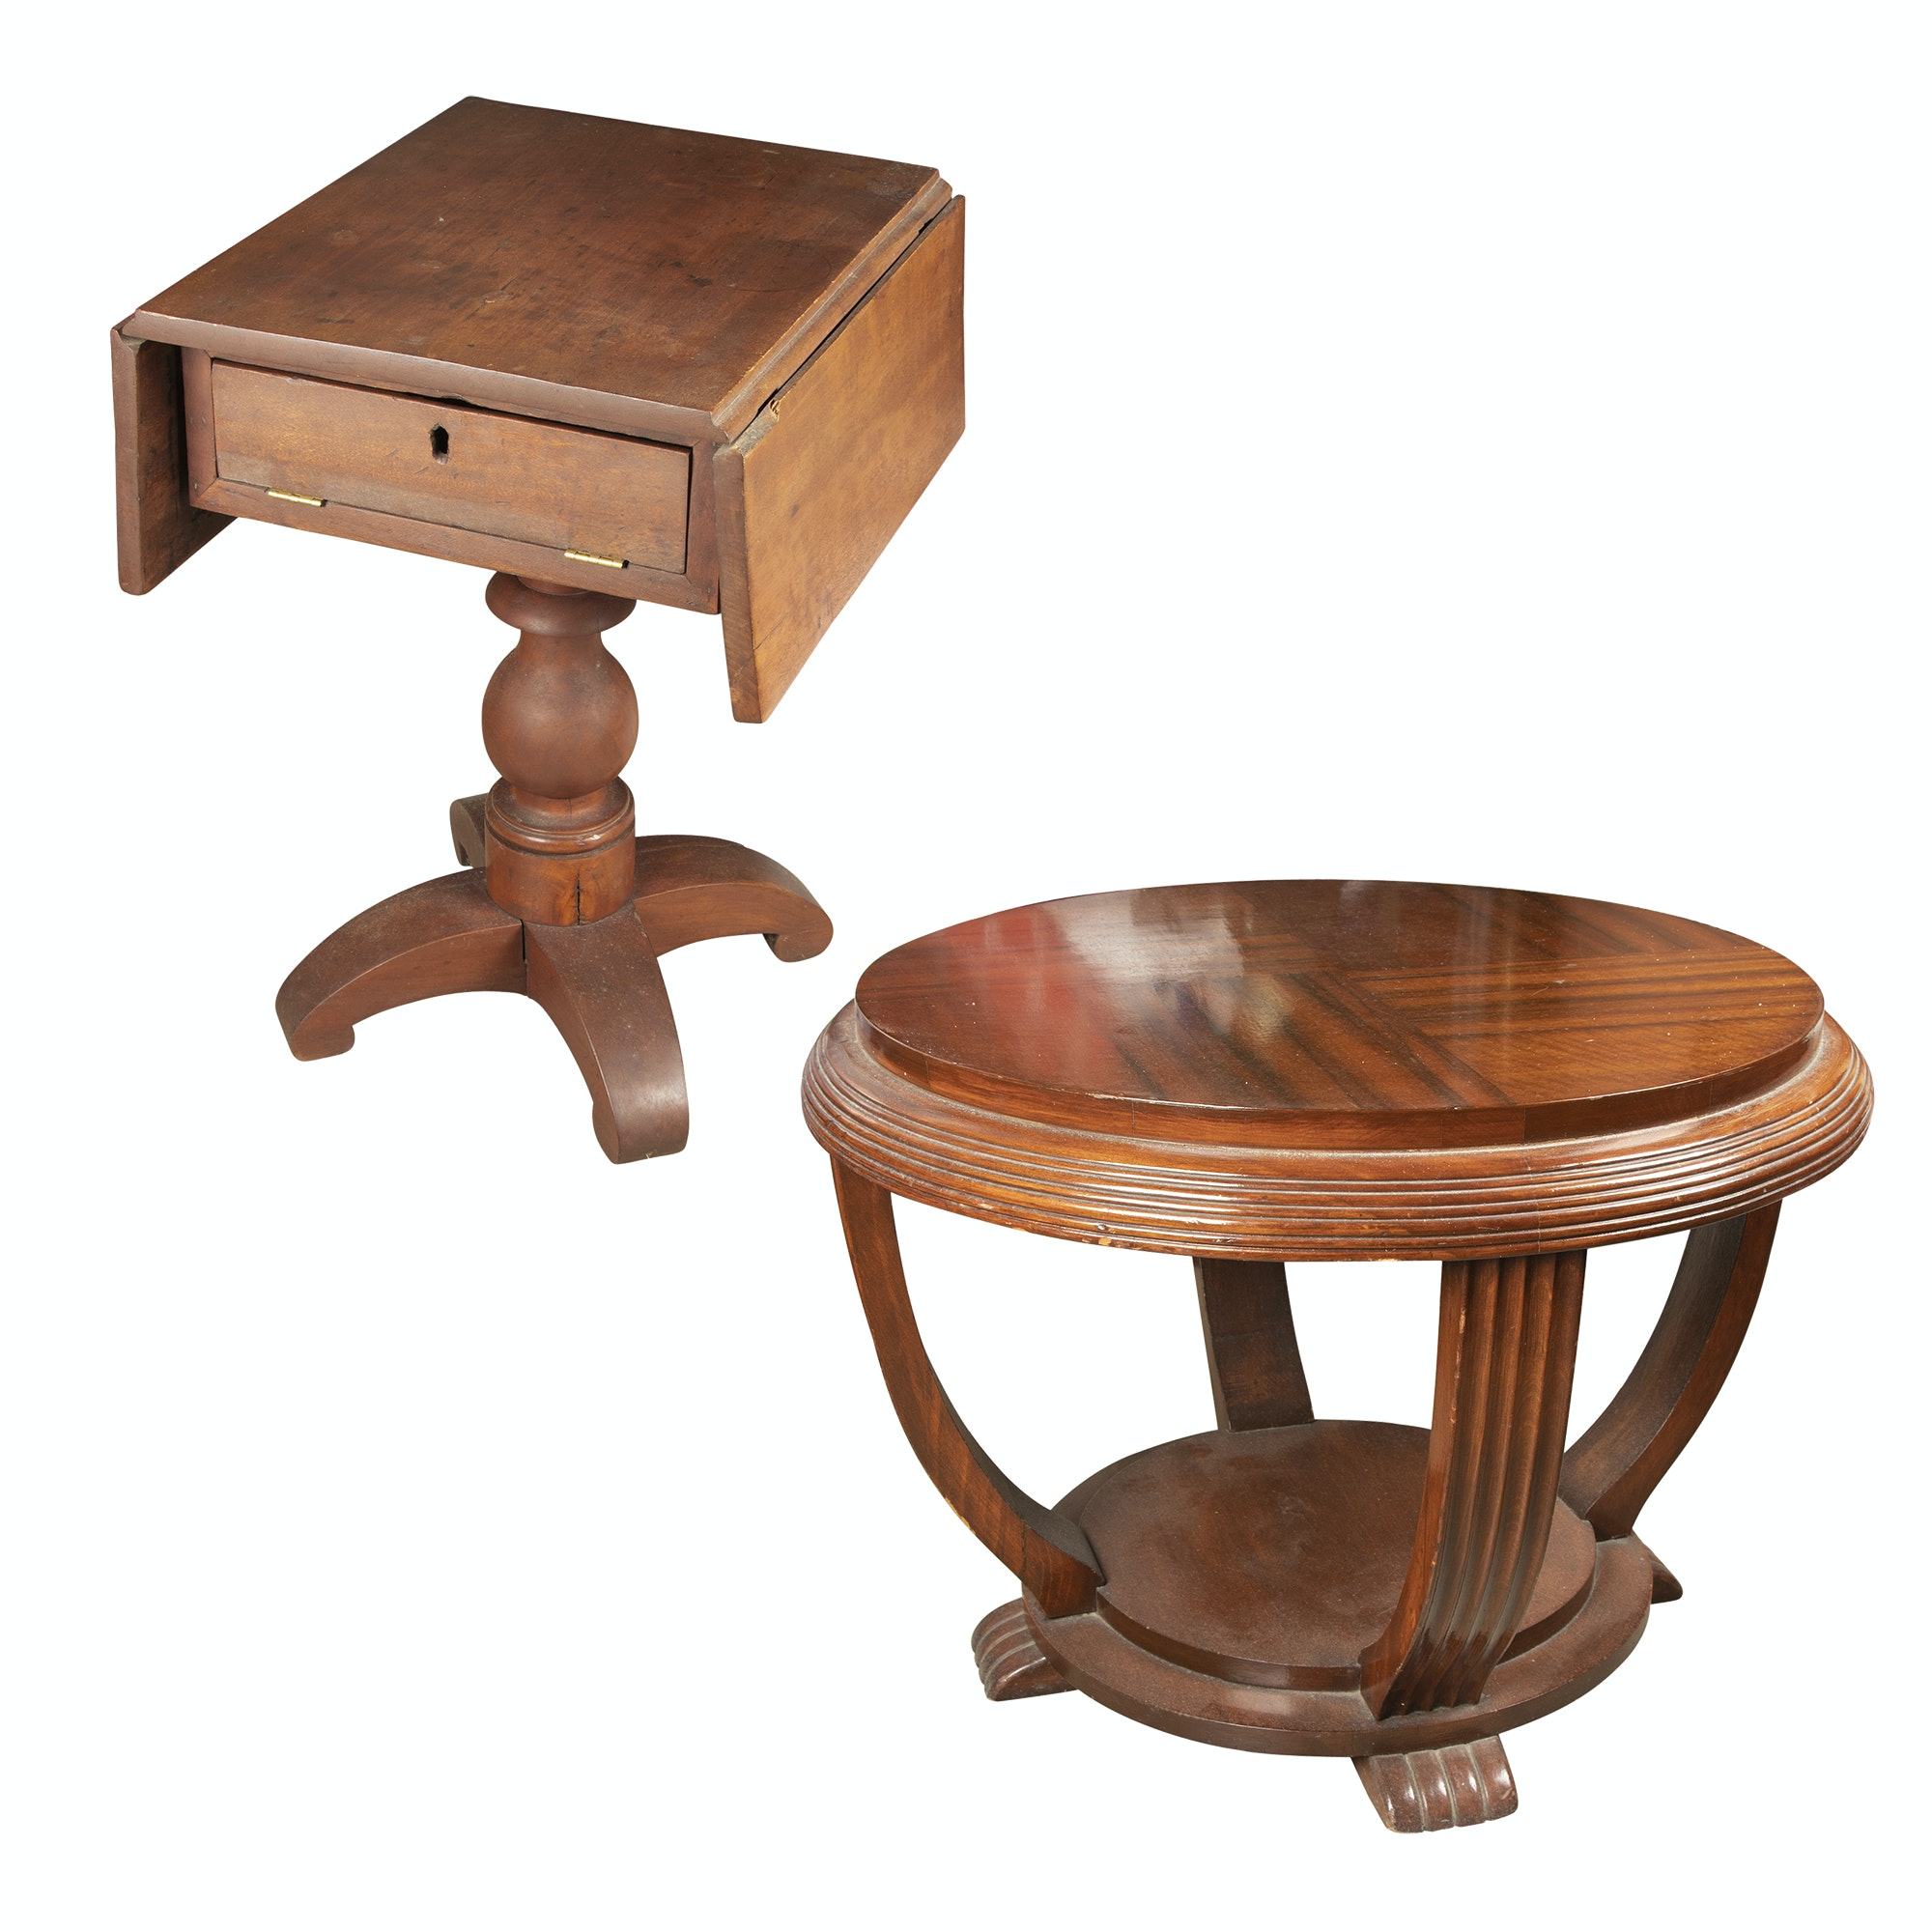 American Empire Style Drop Leaf Side Table and Circular Side Table, 20th C.